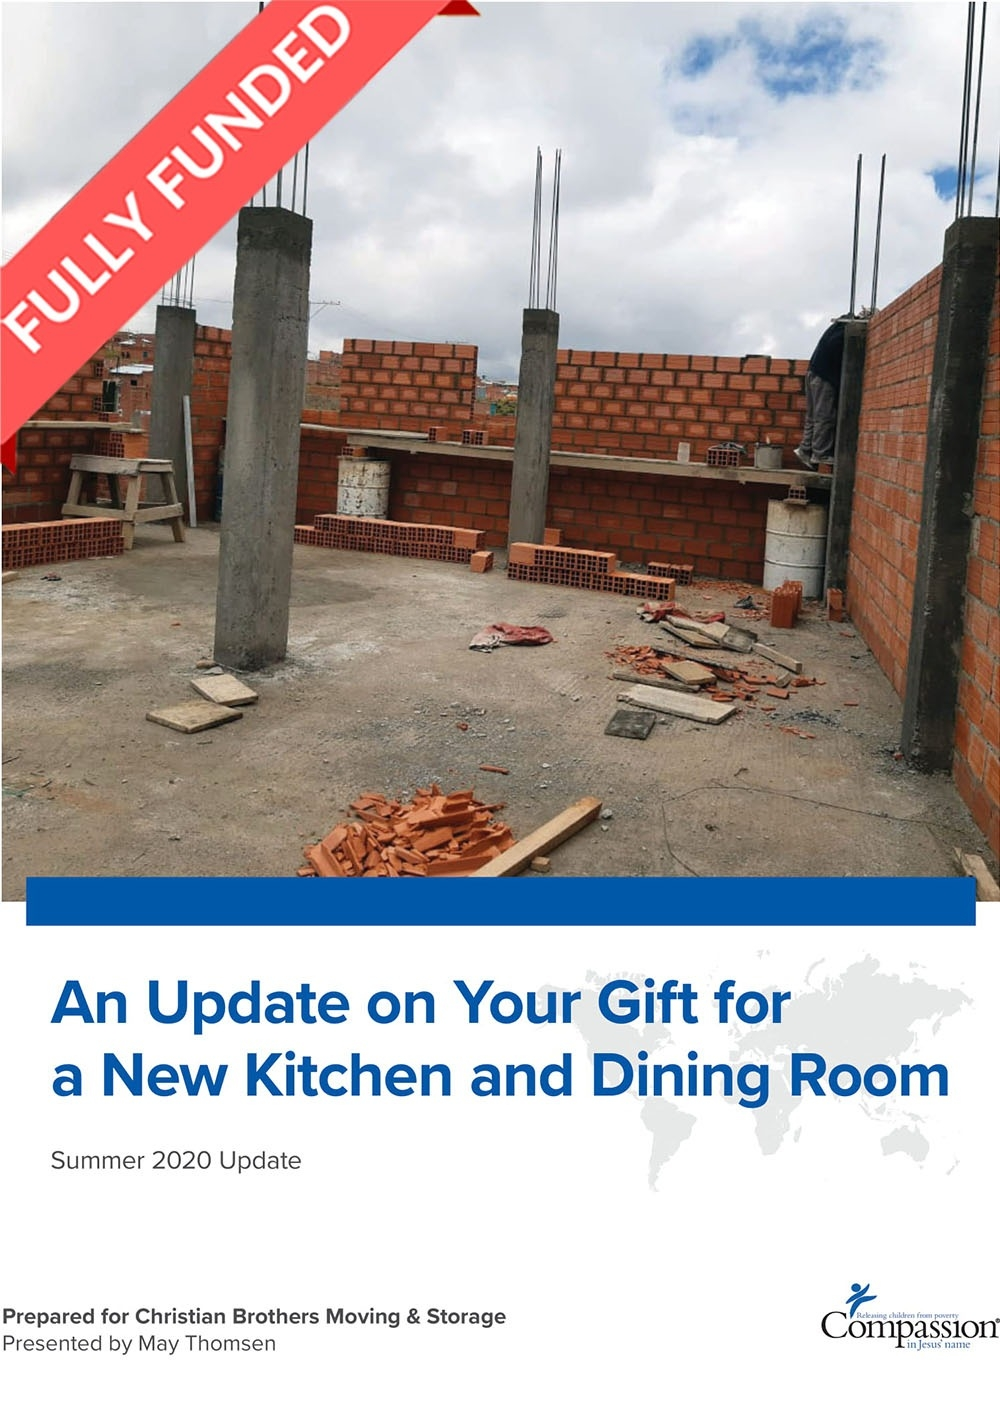 An Update on Your Gift for a New Kitchen and Dining Room